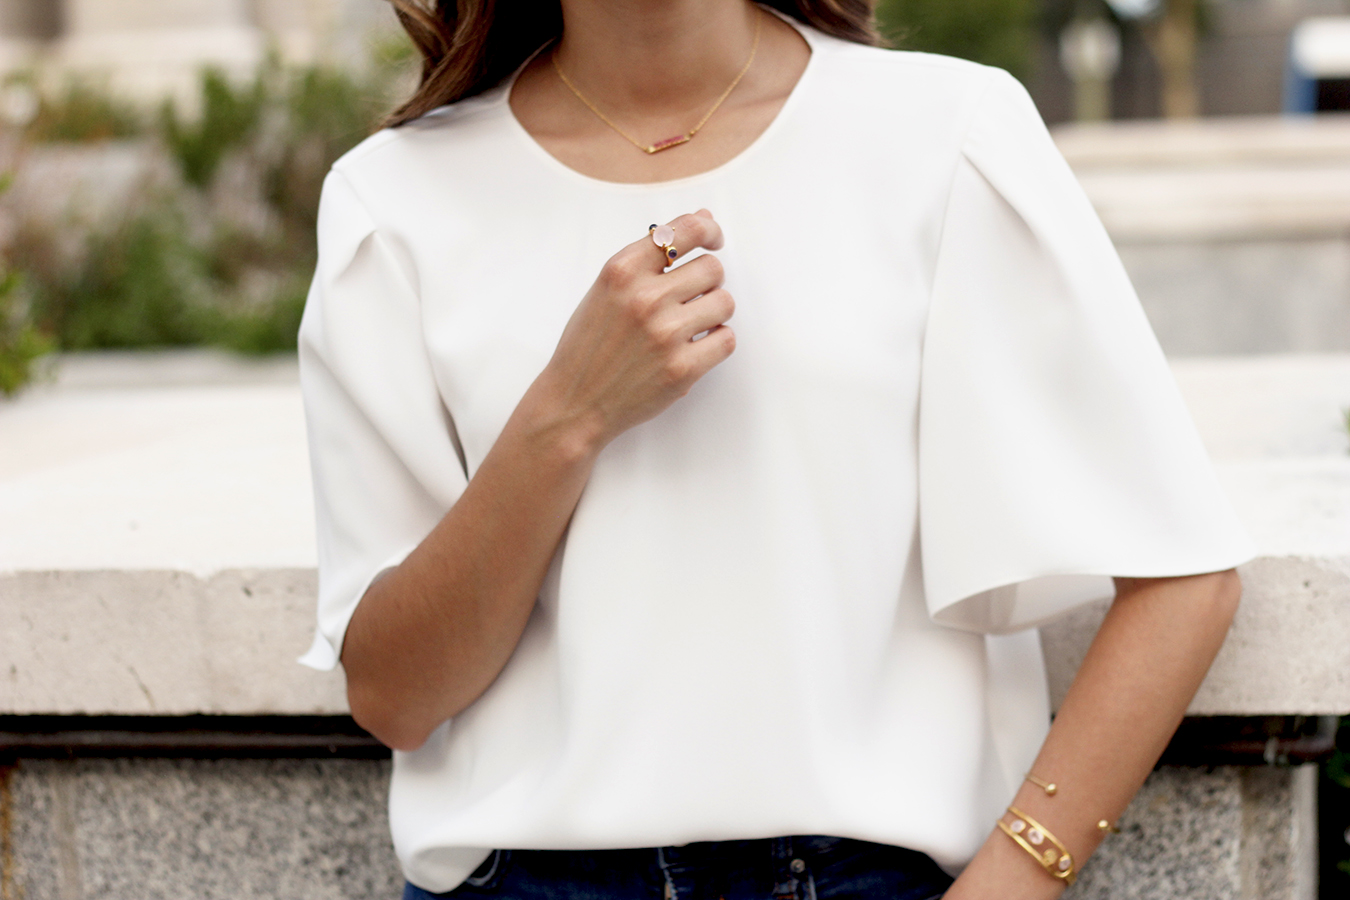 White blouse jeans earrings jewellery corte ingles joyería verano summer outfit style1